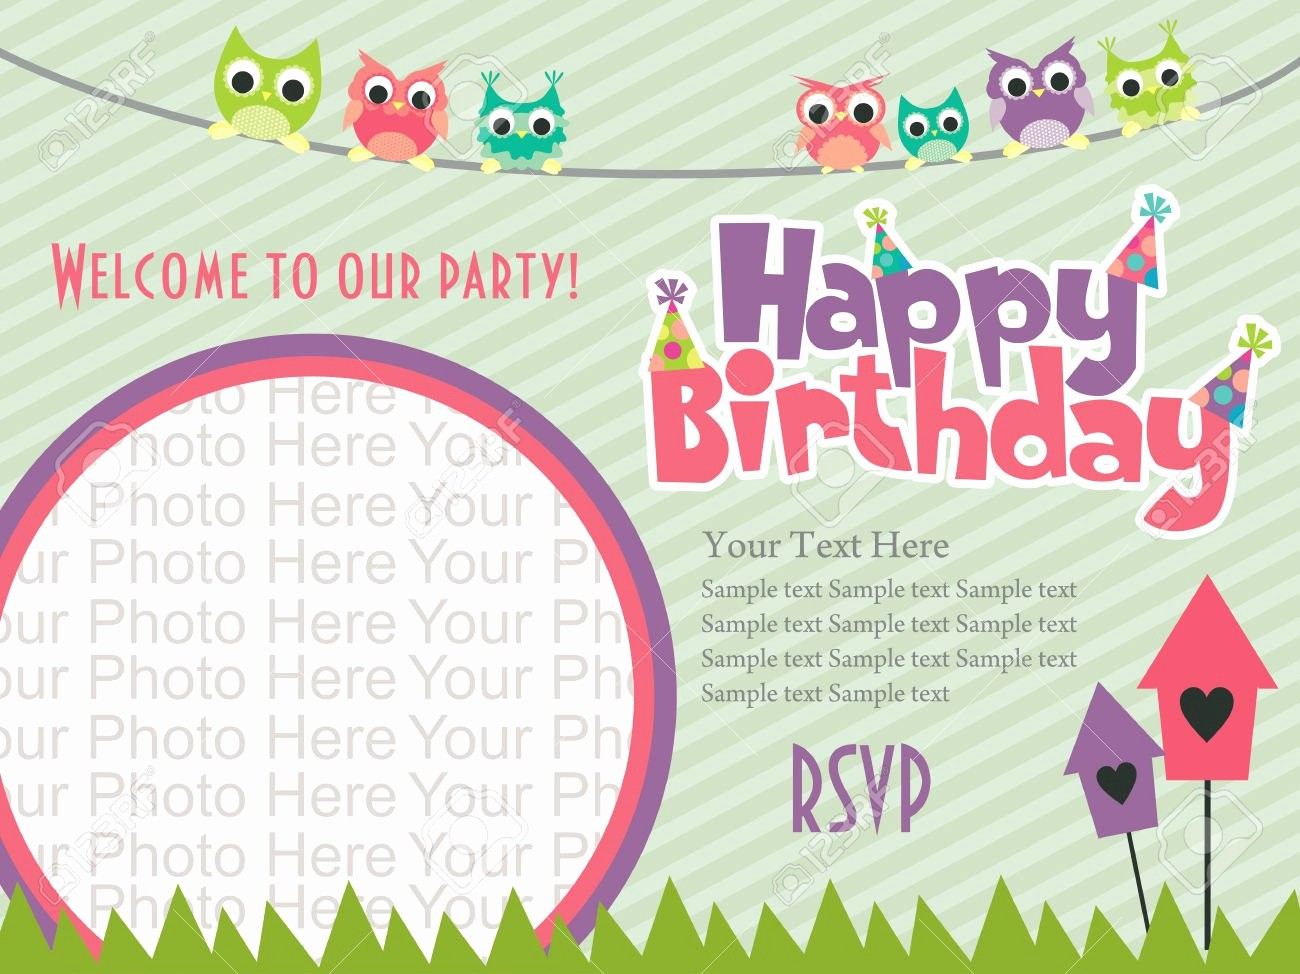 Birthday Party Invitation Card Template Elegant Birthday Invitation Cards Design